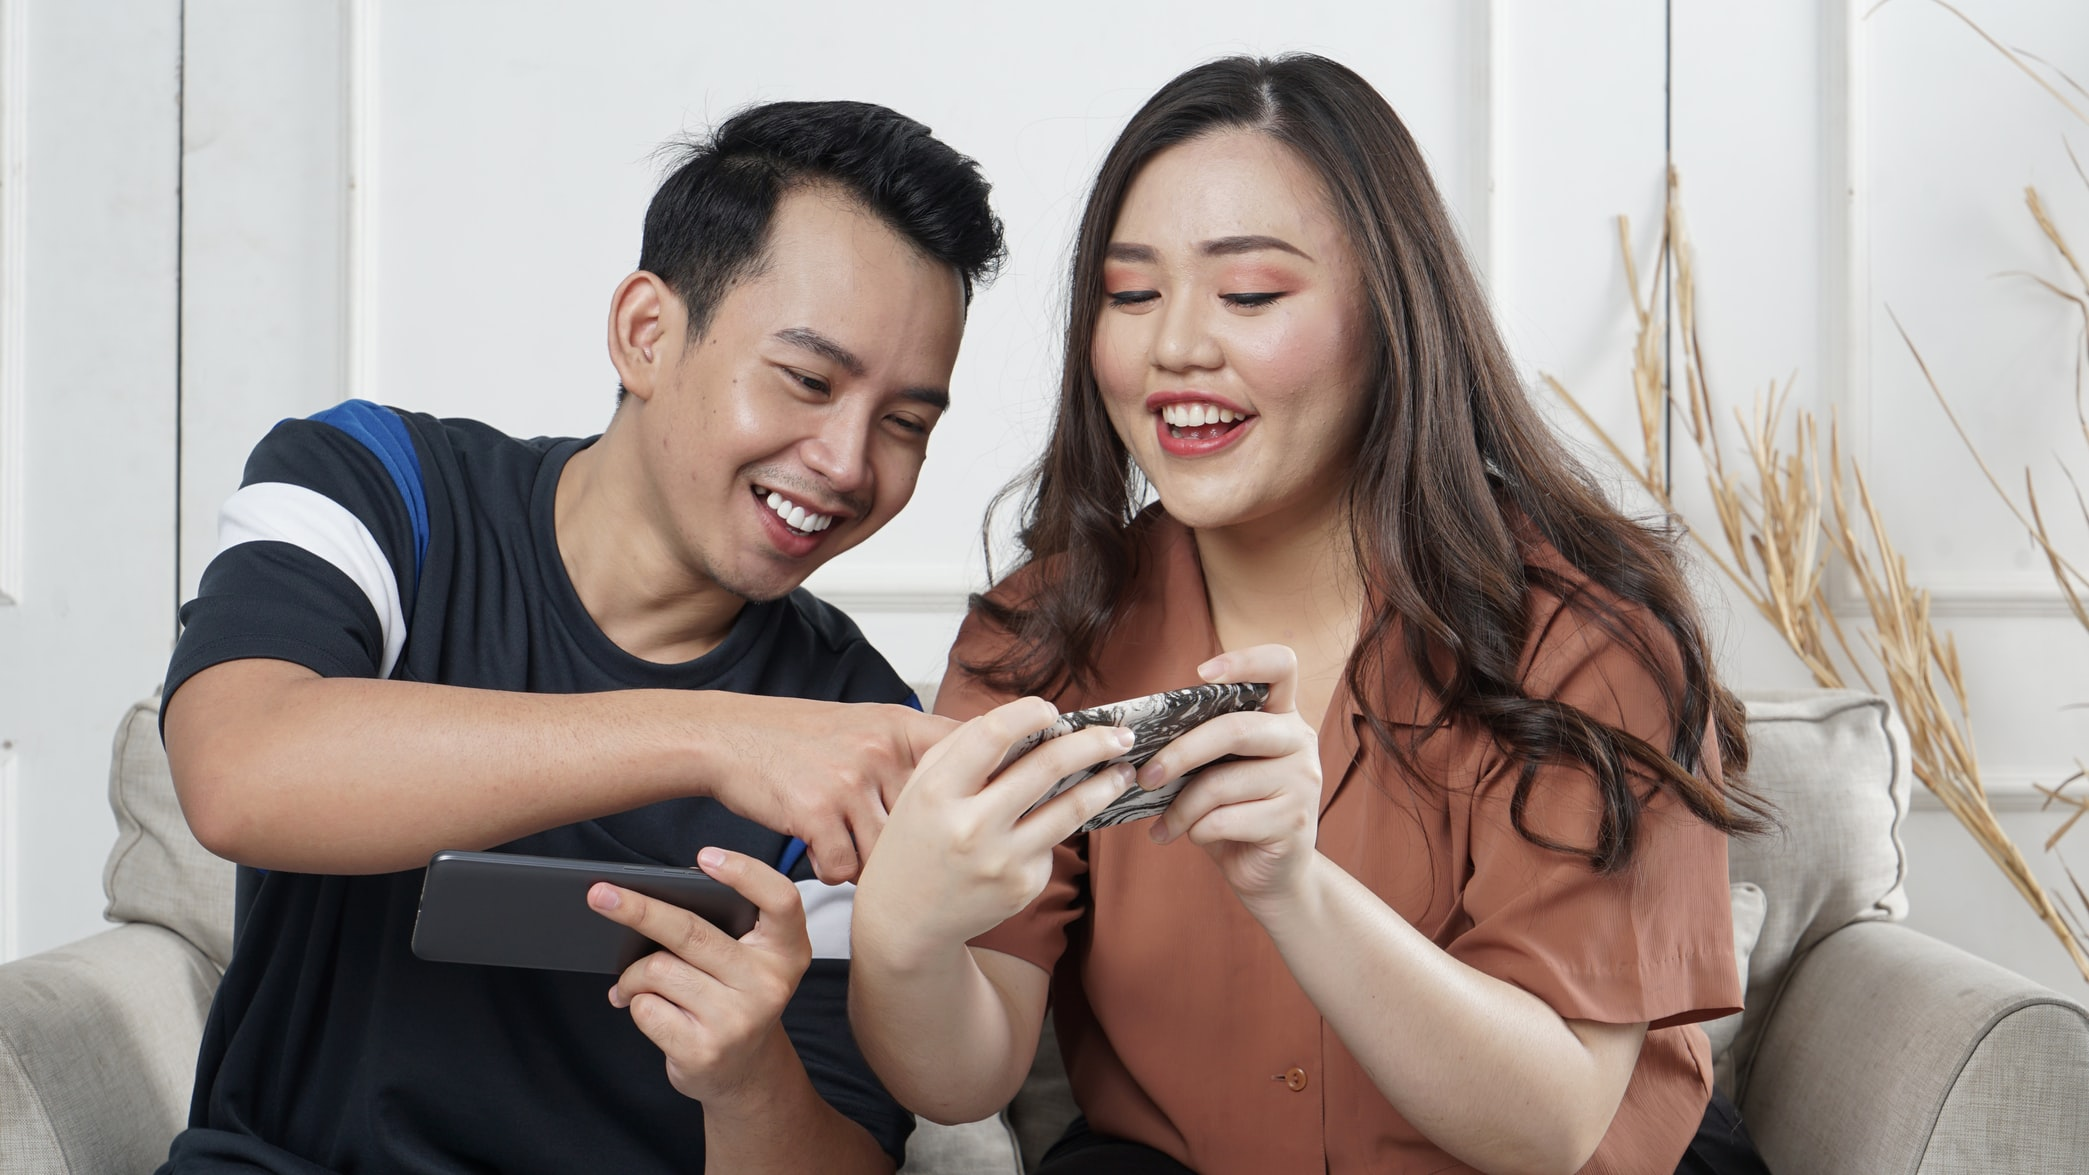 users watching video on phone